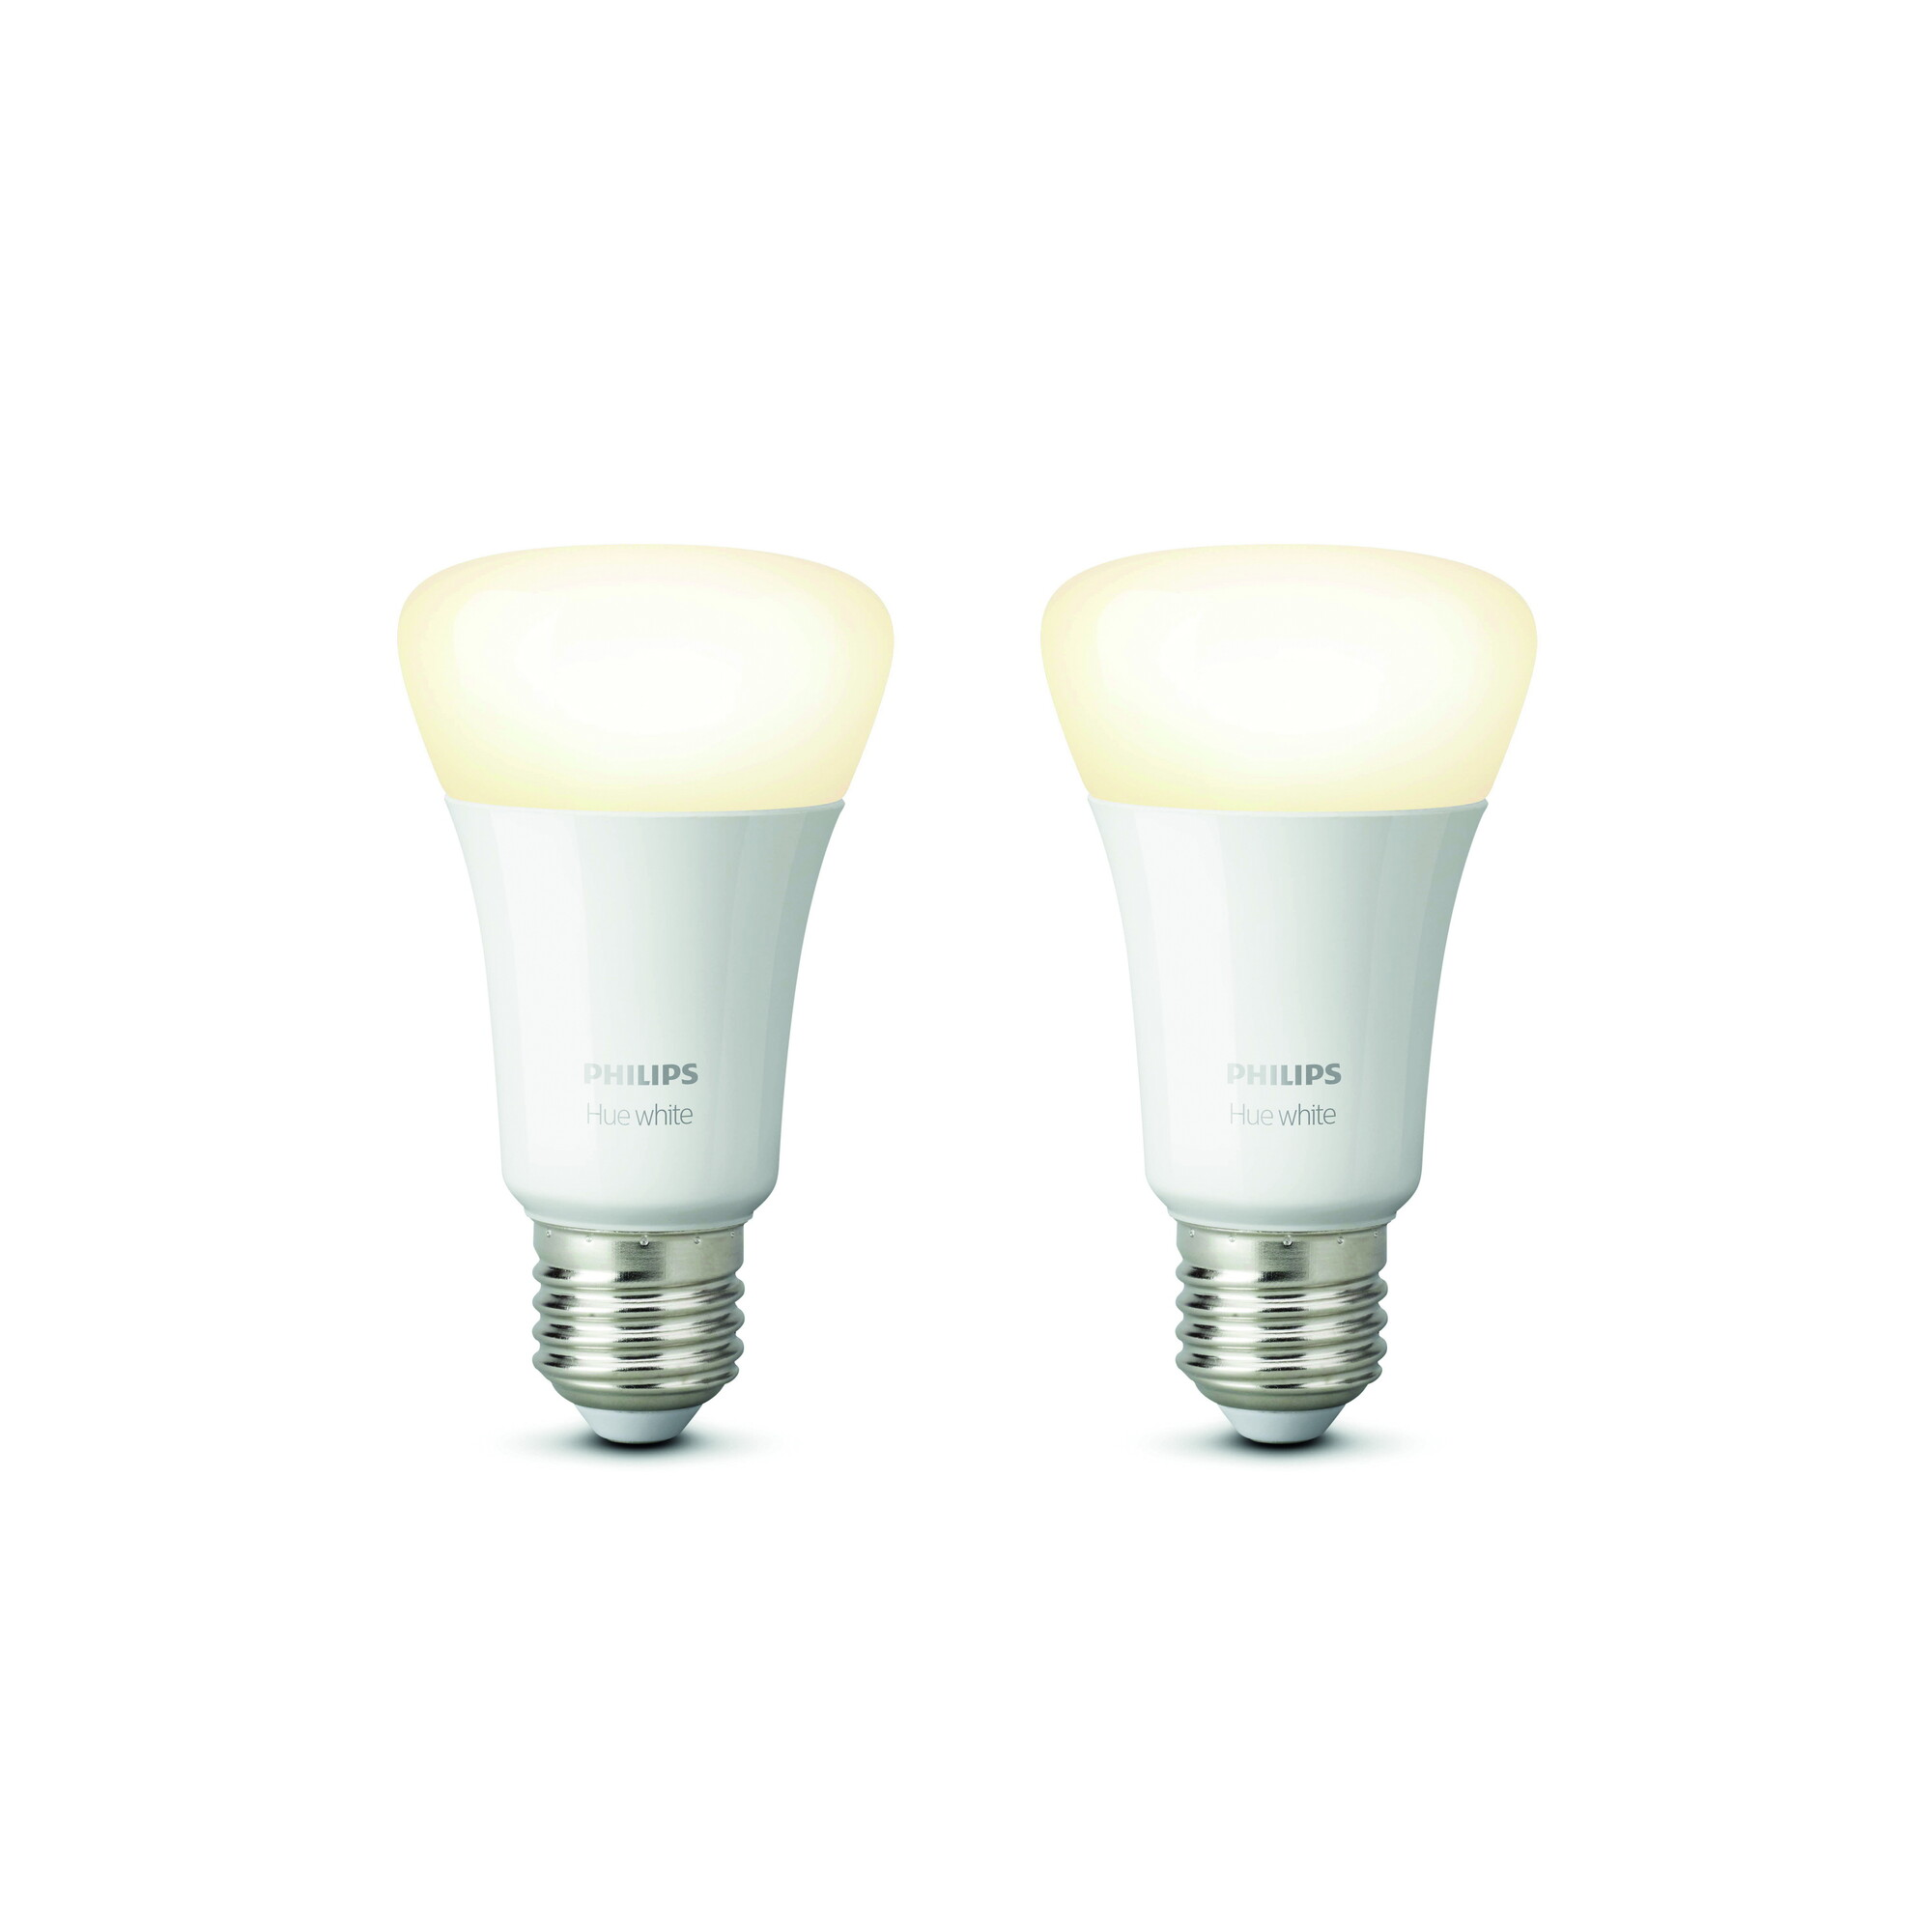 Philips HUE White E27 9W 806lm 2700K Lamp Frosted